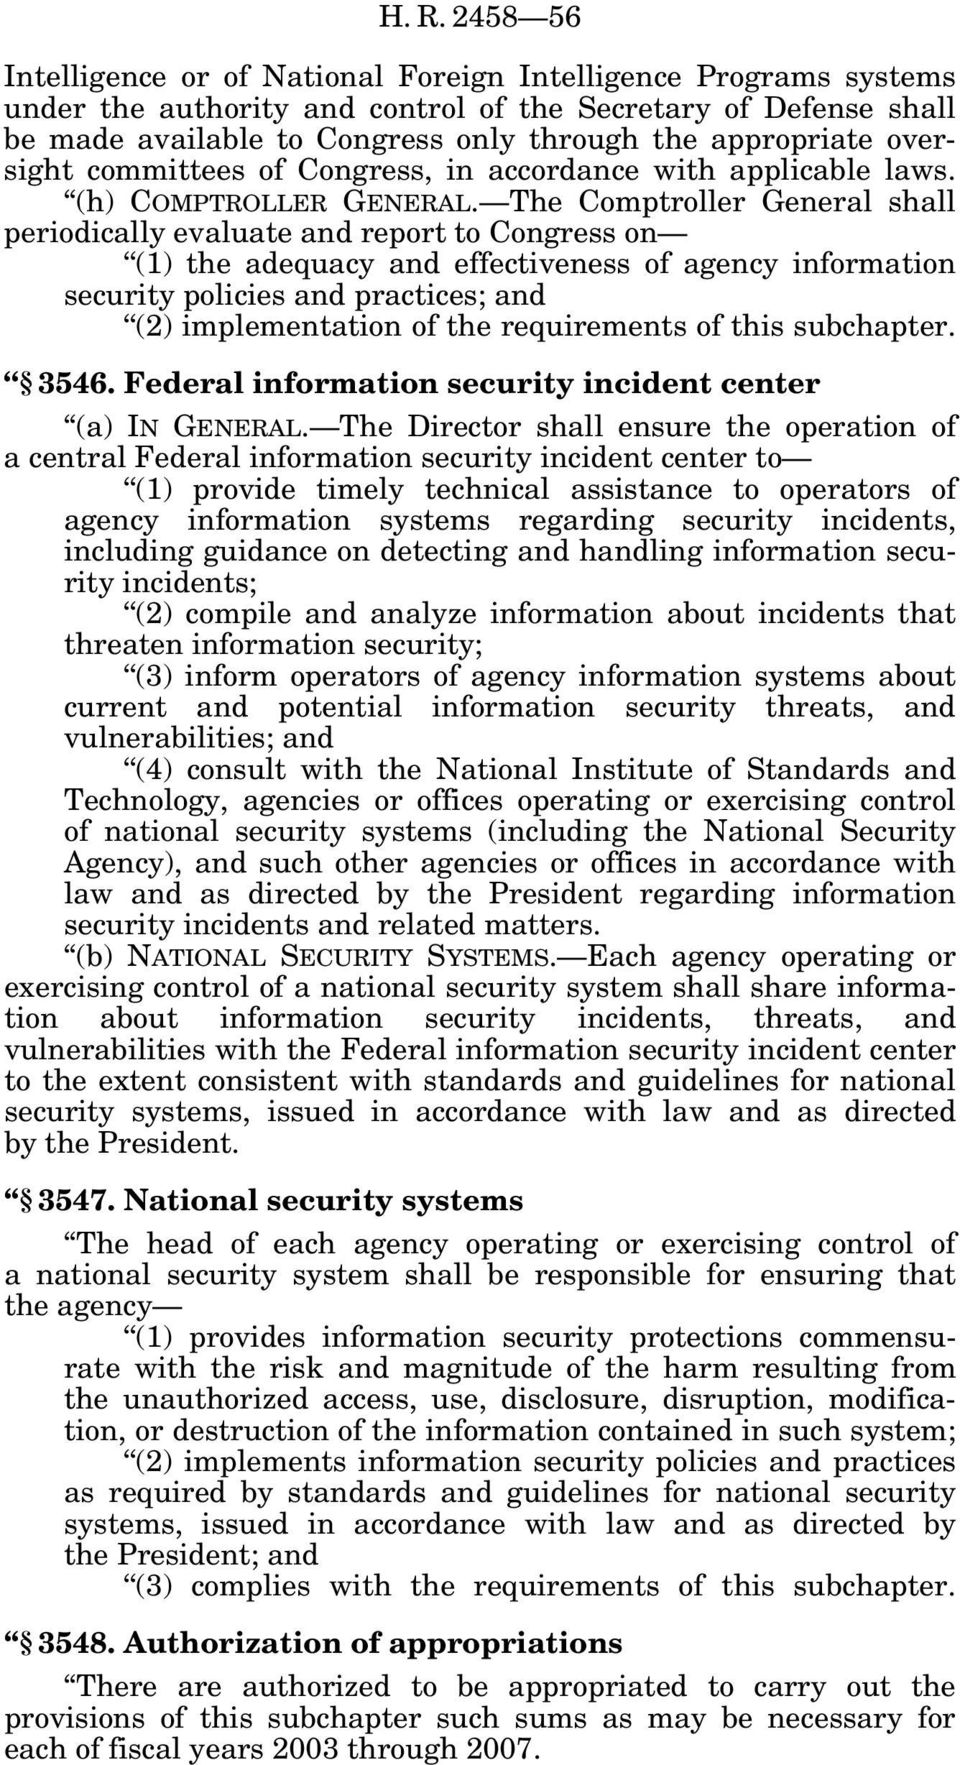 The Comptroller General shall periodically evaluate and report to Congress on (1) the adequacy and effectiveness of agency information security policies and practices; and (2) implementation of the